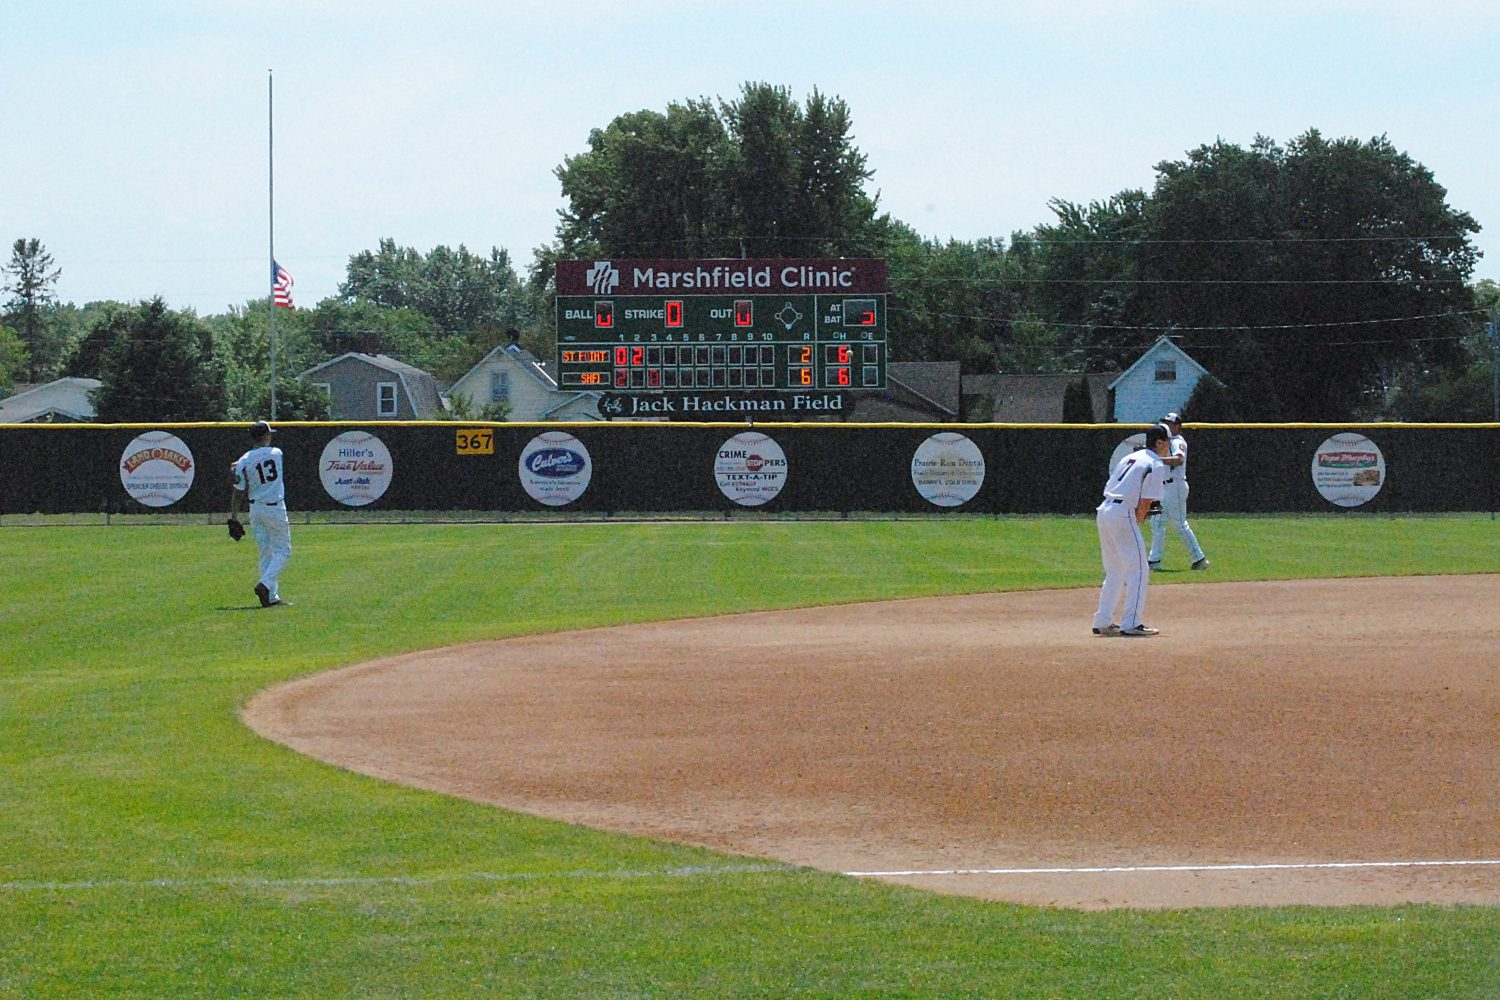 Jack Hackman Field in Marshfield will be the home for the 2016 Wisconsin American Legion Class AAA State Tournament, which will be held Tuesday, July 26, through Saturday, July 30. Eight teams from across Wisconsin, including Marshfield, will compete in the double-elimination tournament.